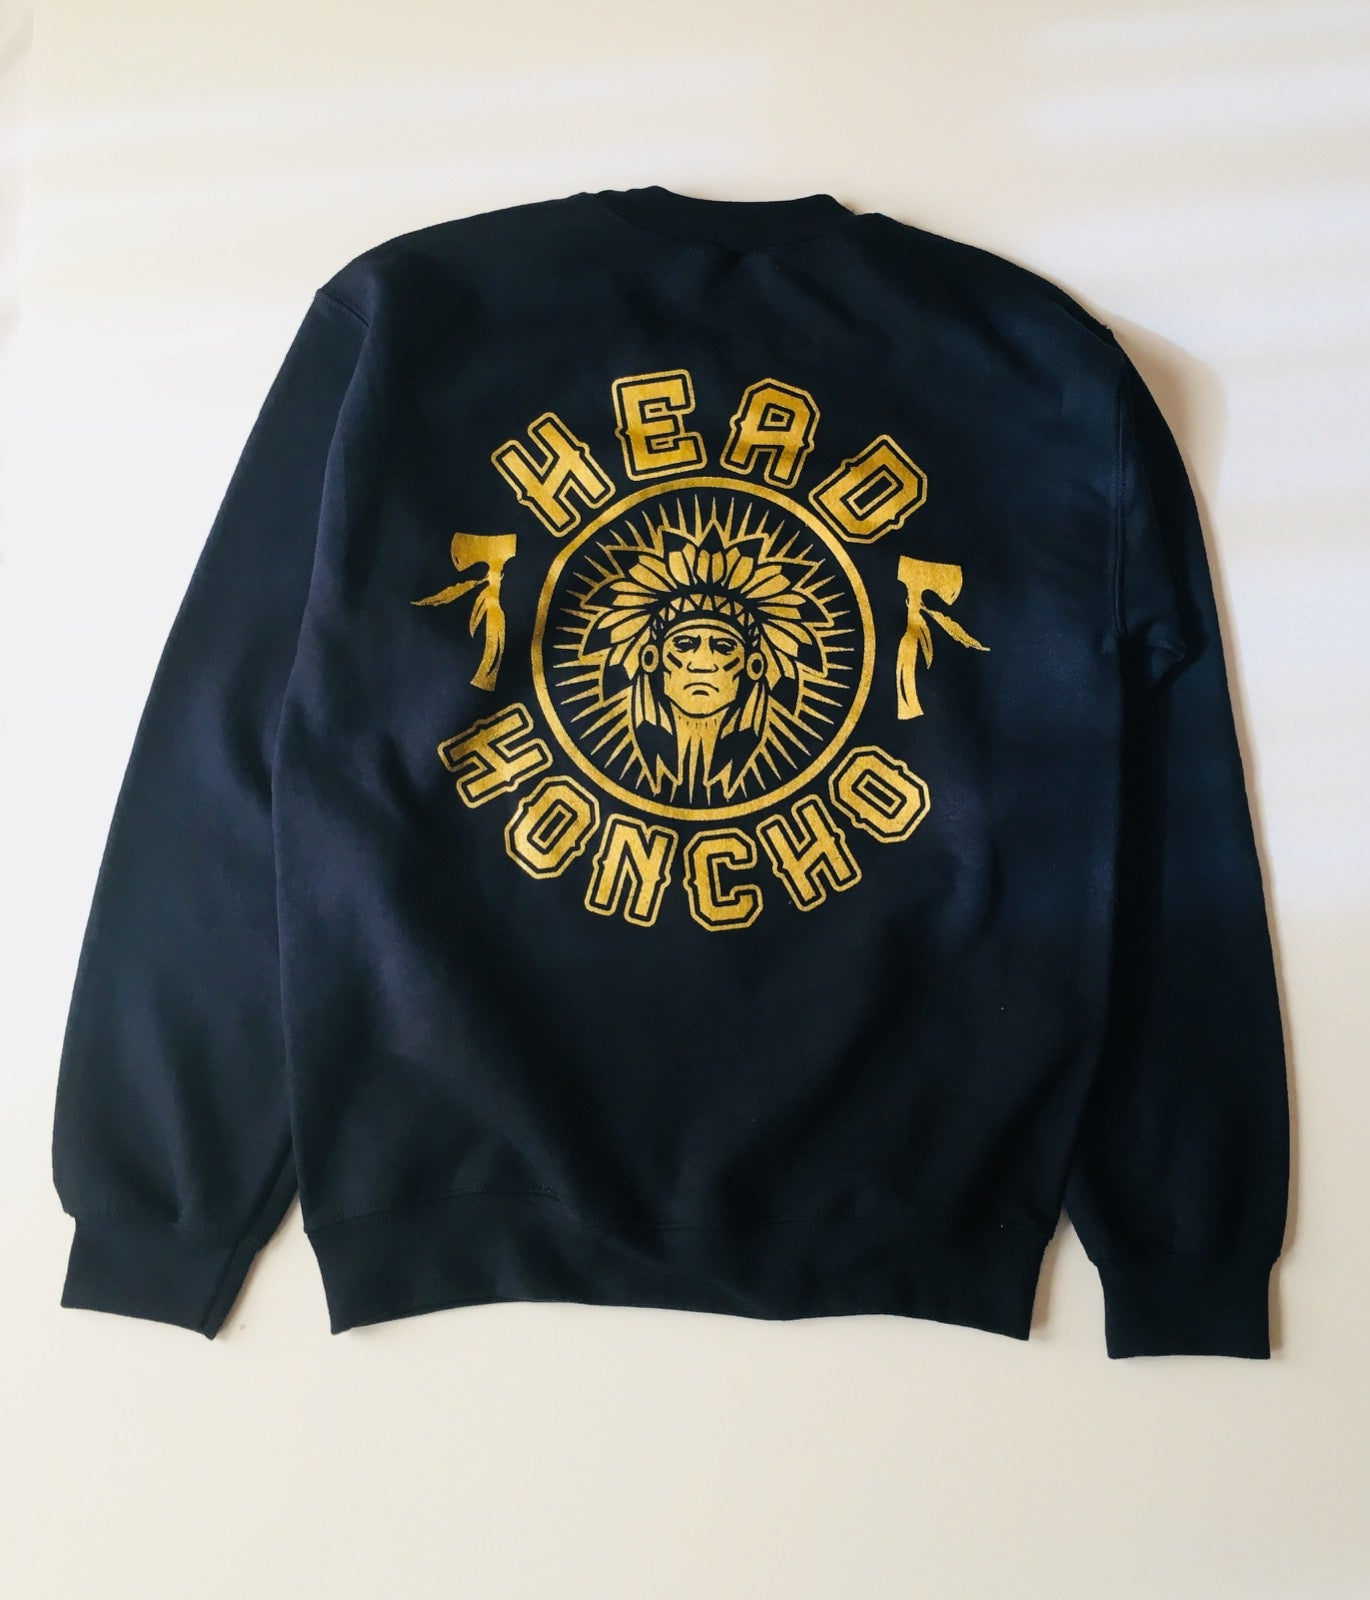 Head honcho lightweight crewneck.